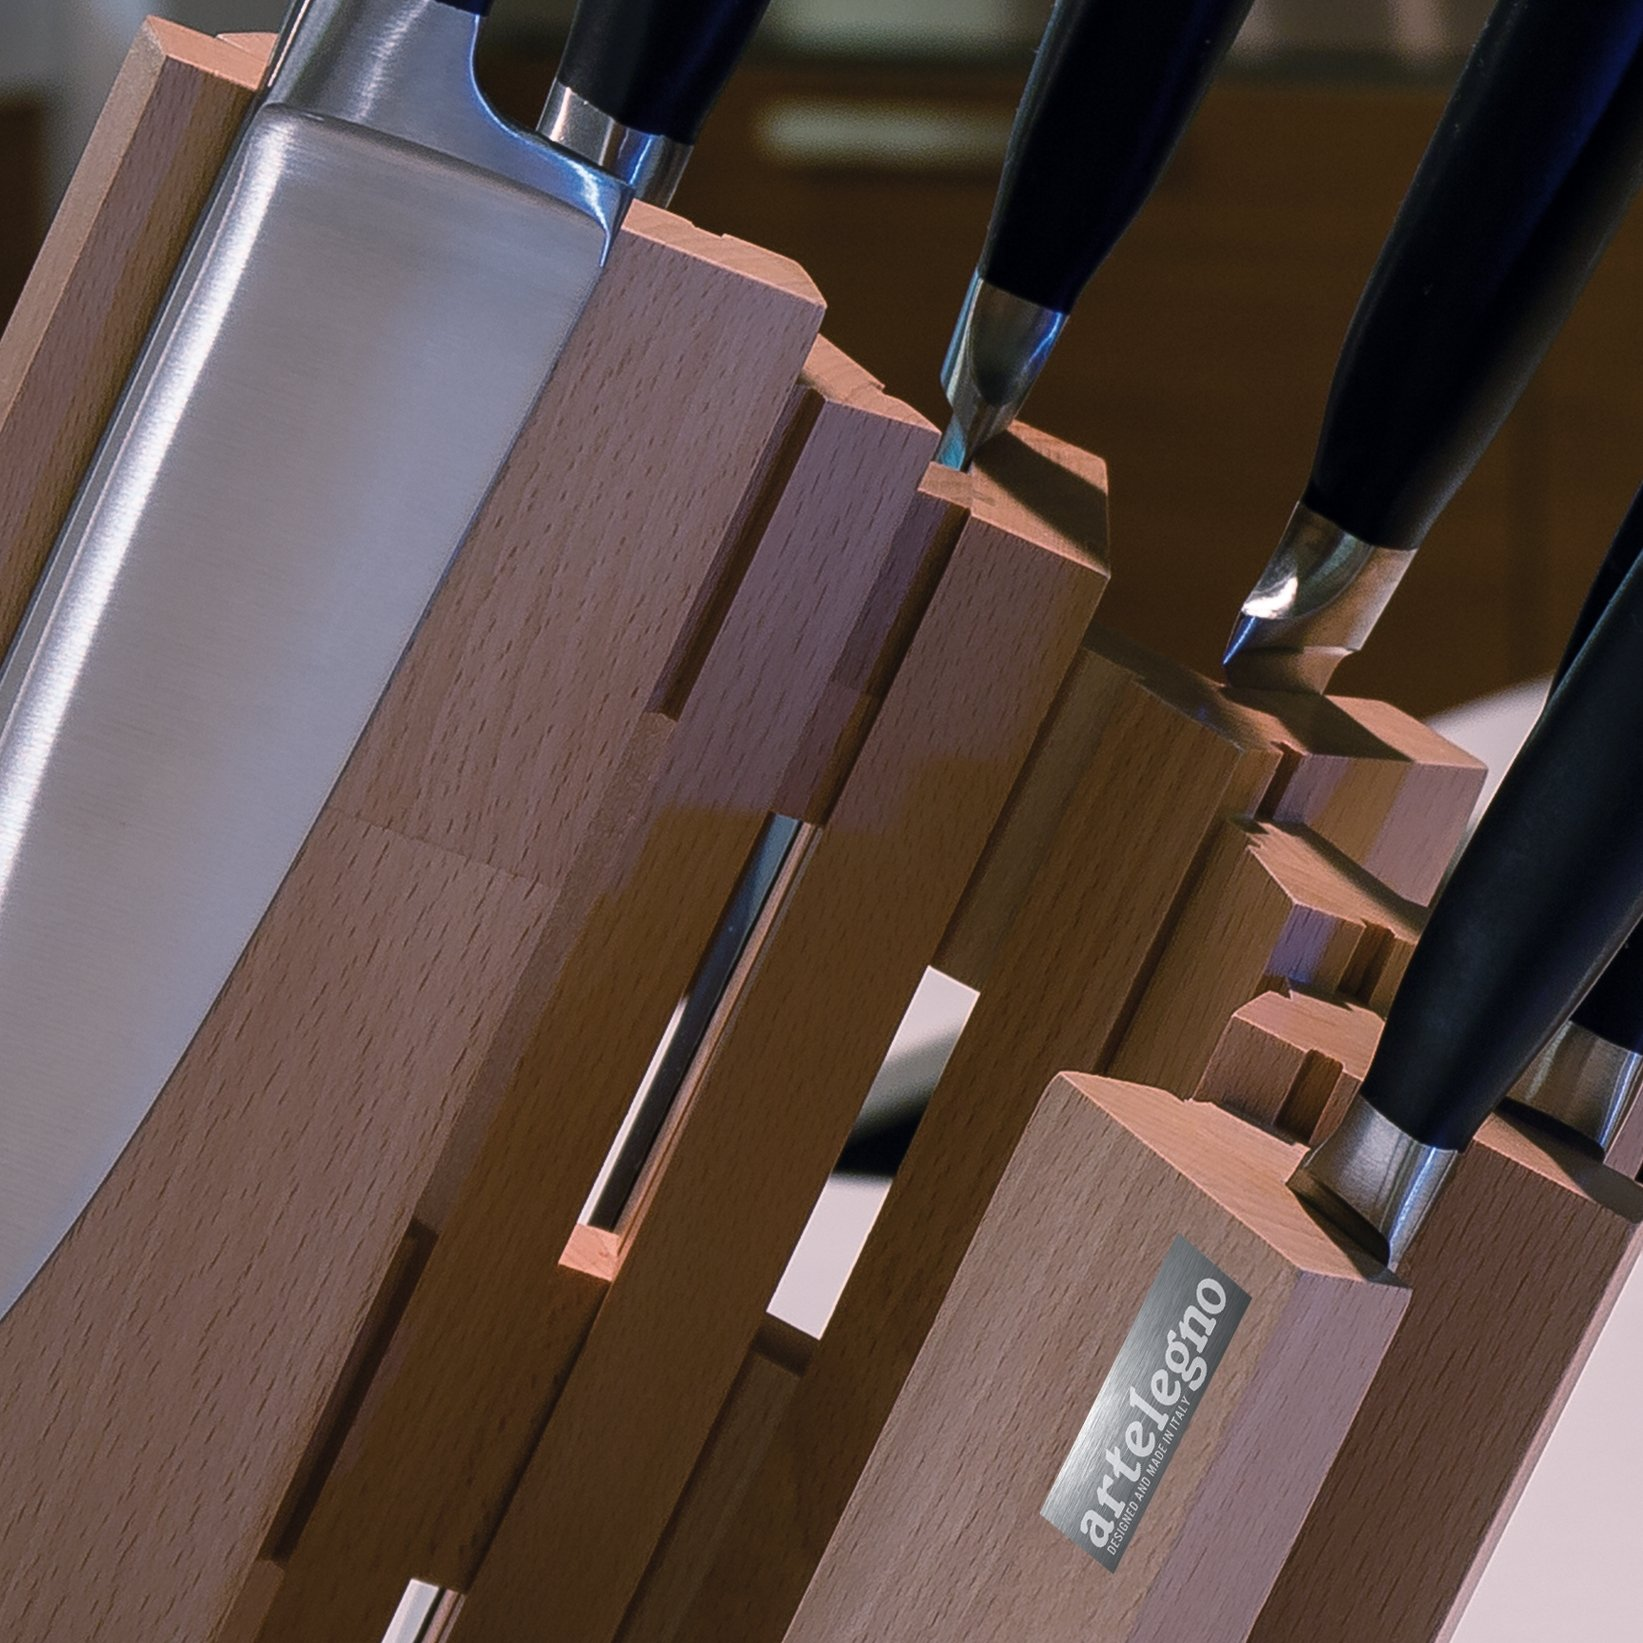 Artelegno Magnetic Knife Block Solid Beech Wood 8 Panel, Luxurious Italian Pisa Collection by Master Craftsmen Displays High-End Knives Elegantly, Eco-friendly, Natural Finish, Small by Arte Legno (Image #6)